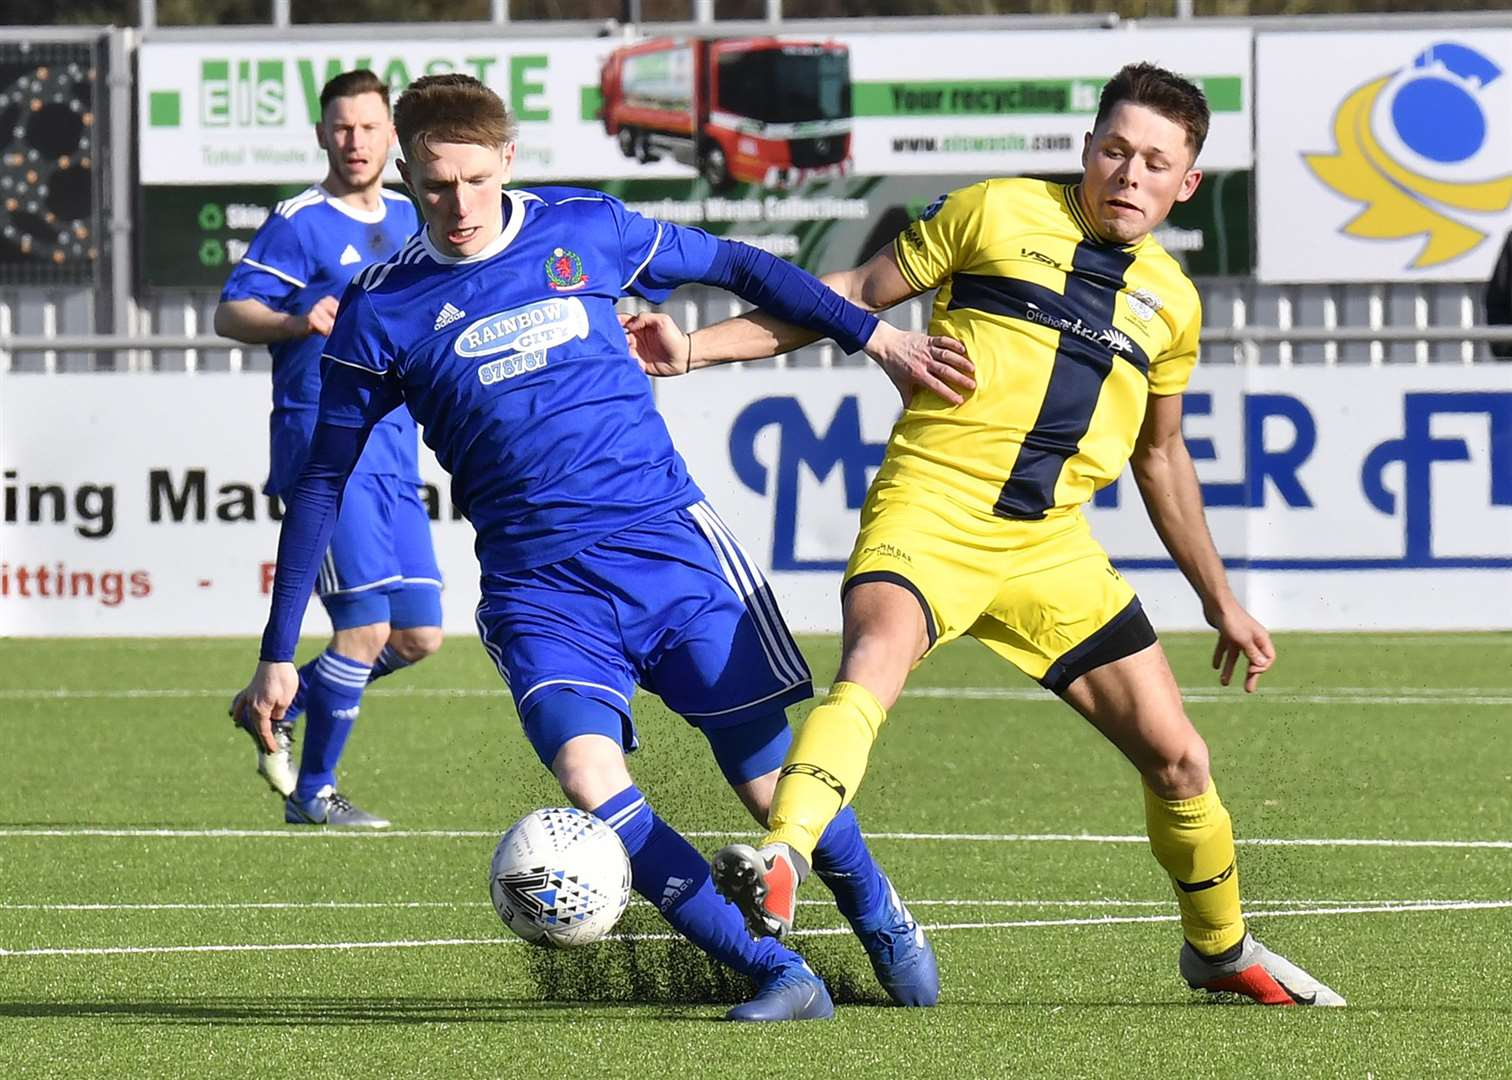 Academy's Jack Henry and Cove Rangers' Blair Yule battle for possession during the Scorries' last visit to Balmoral Stadium. Picture: Bob Roger